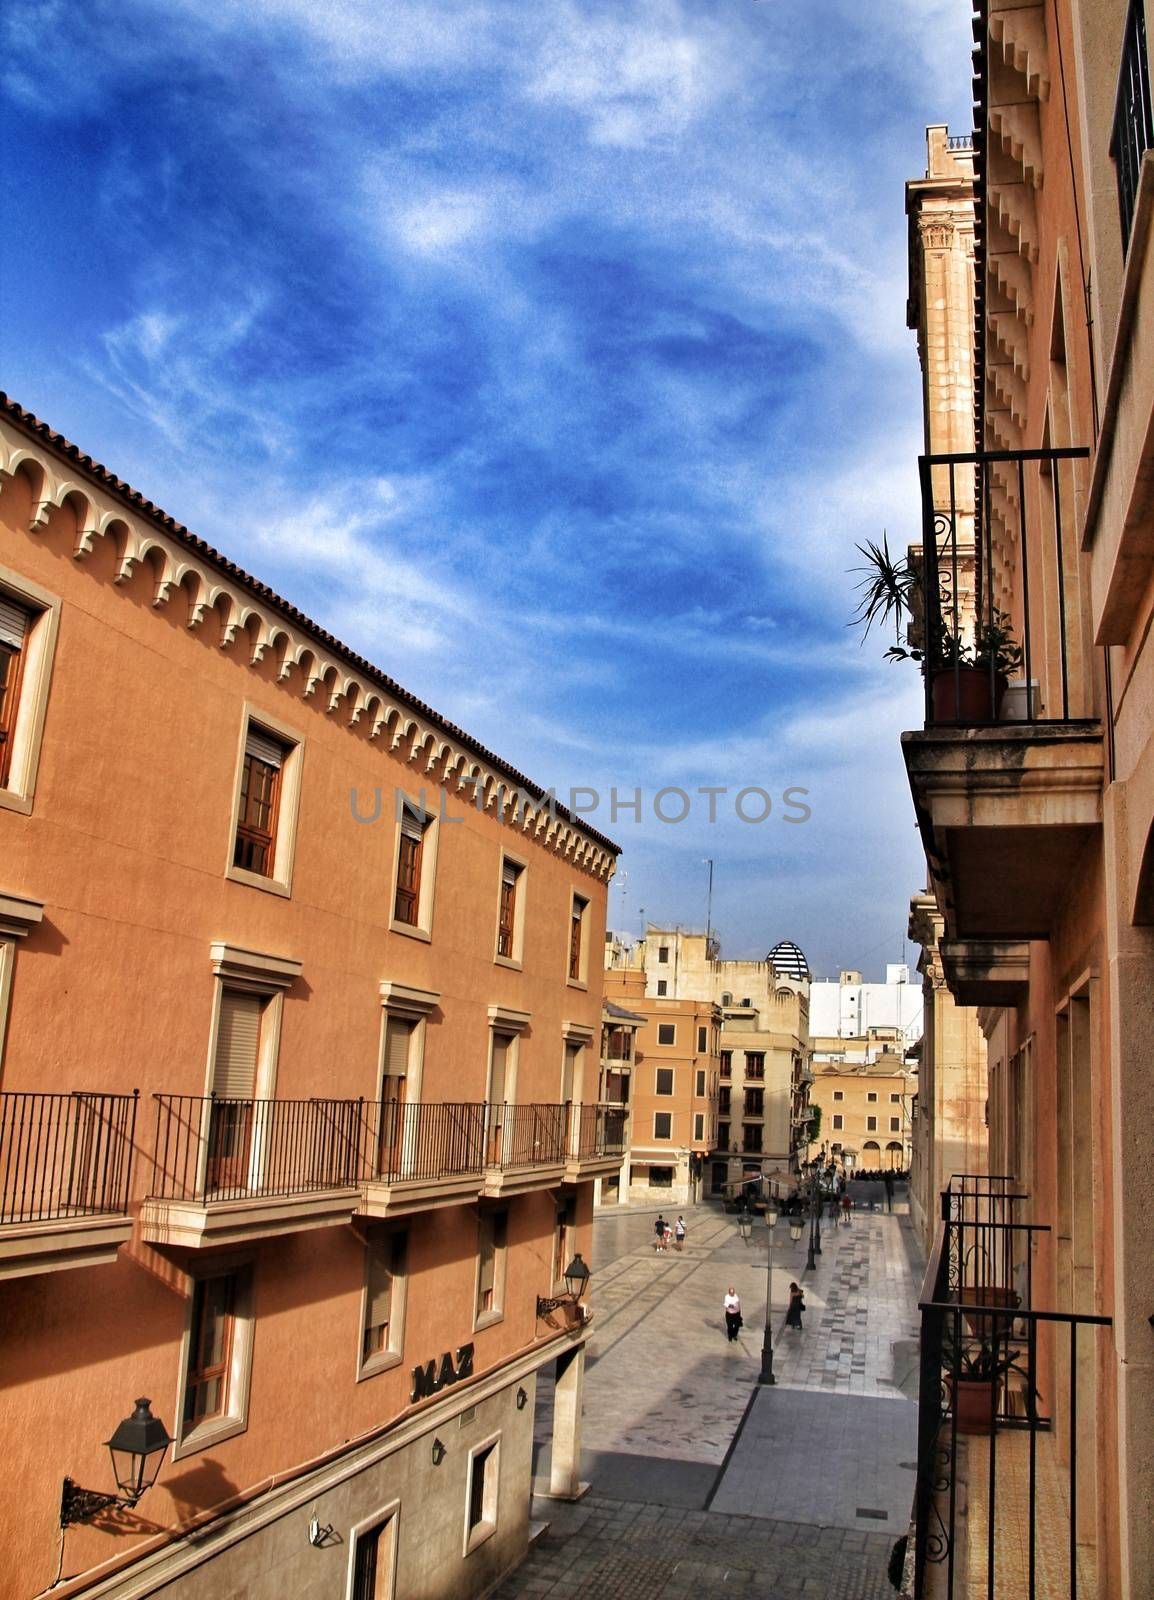 Elche, Alicante, Spain- September 12, 2018: People walking through Eucharistic Convent Square in Elche, Alicante in a sunny day of summer